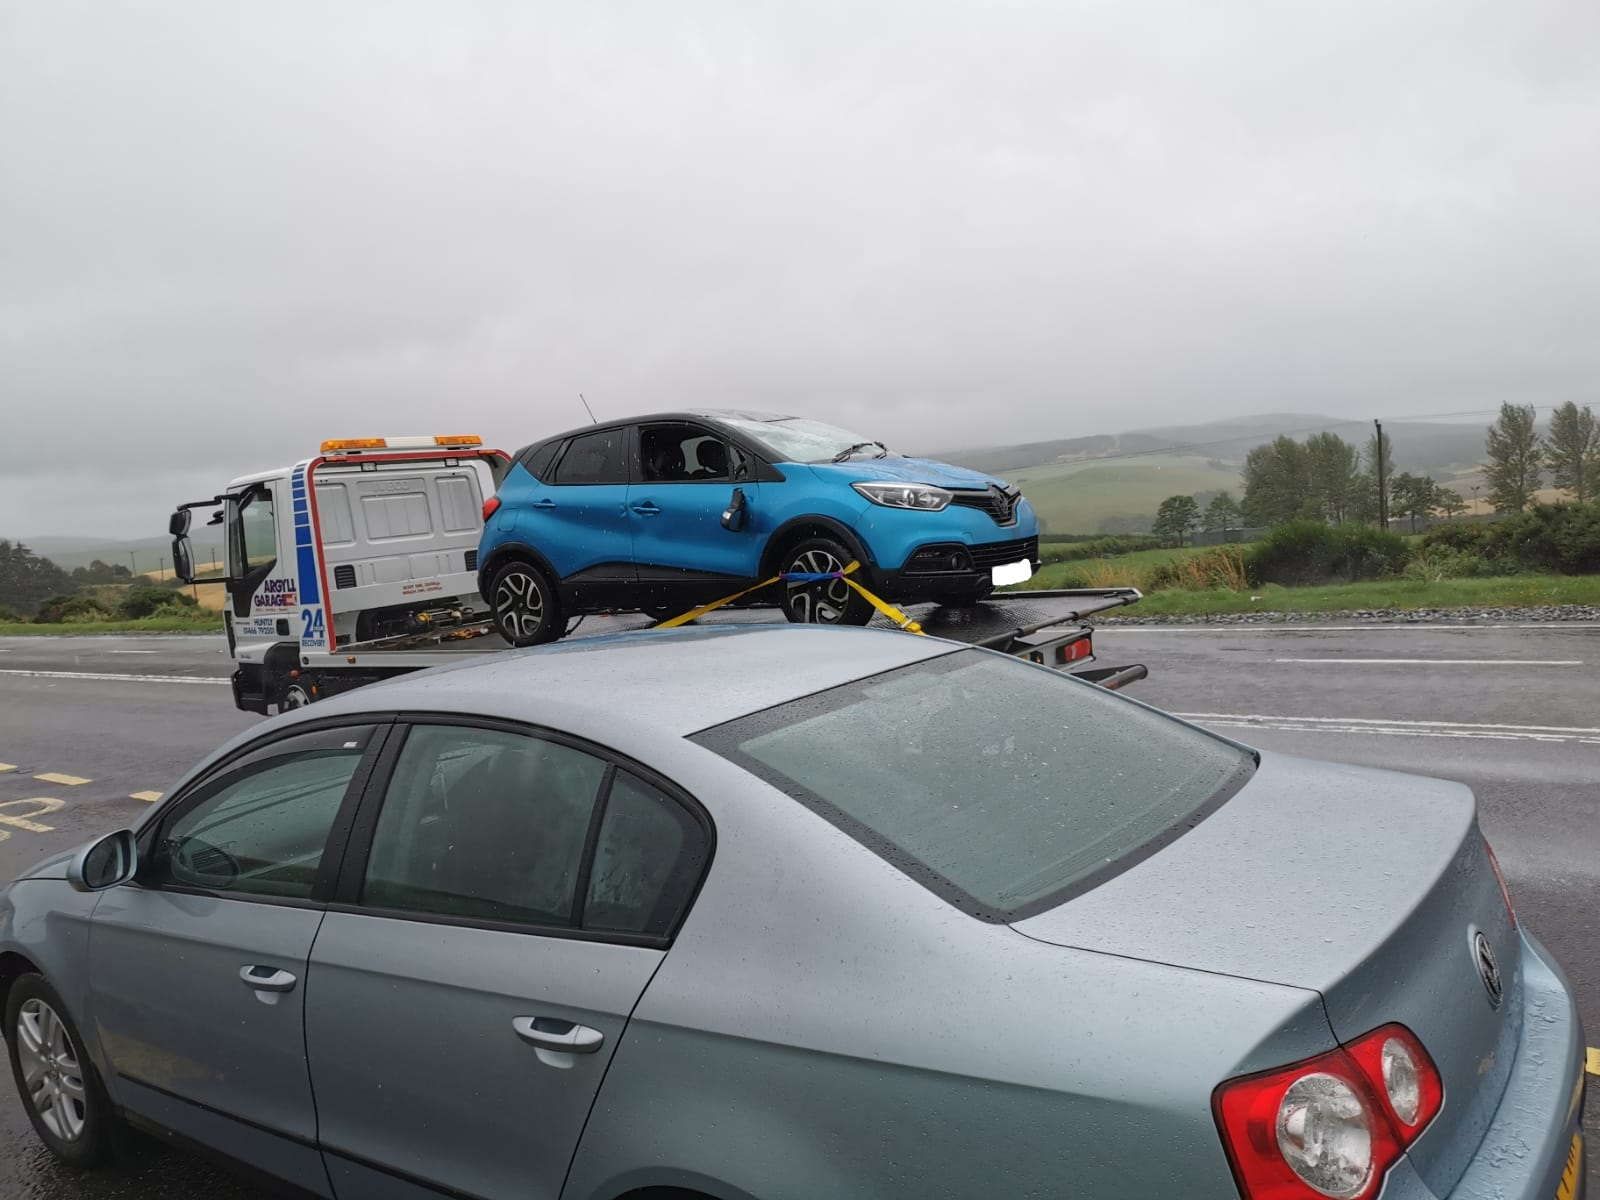 The car being removed by a recovery vehicle.